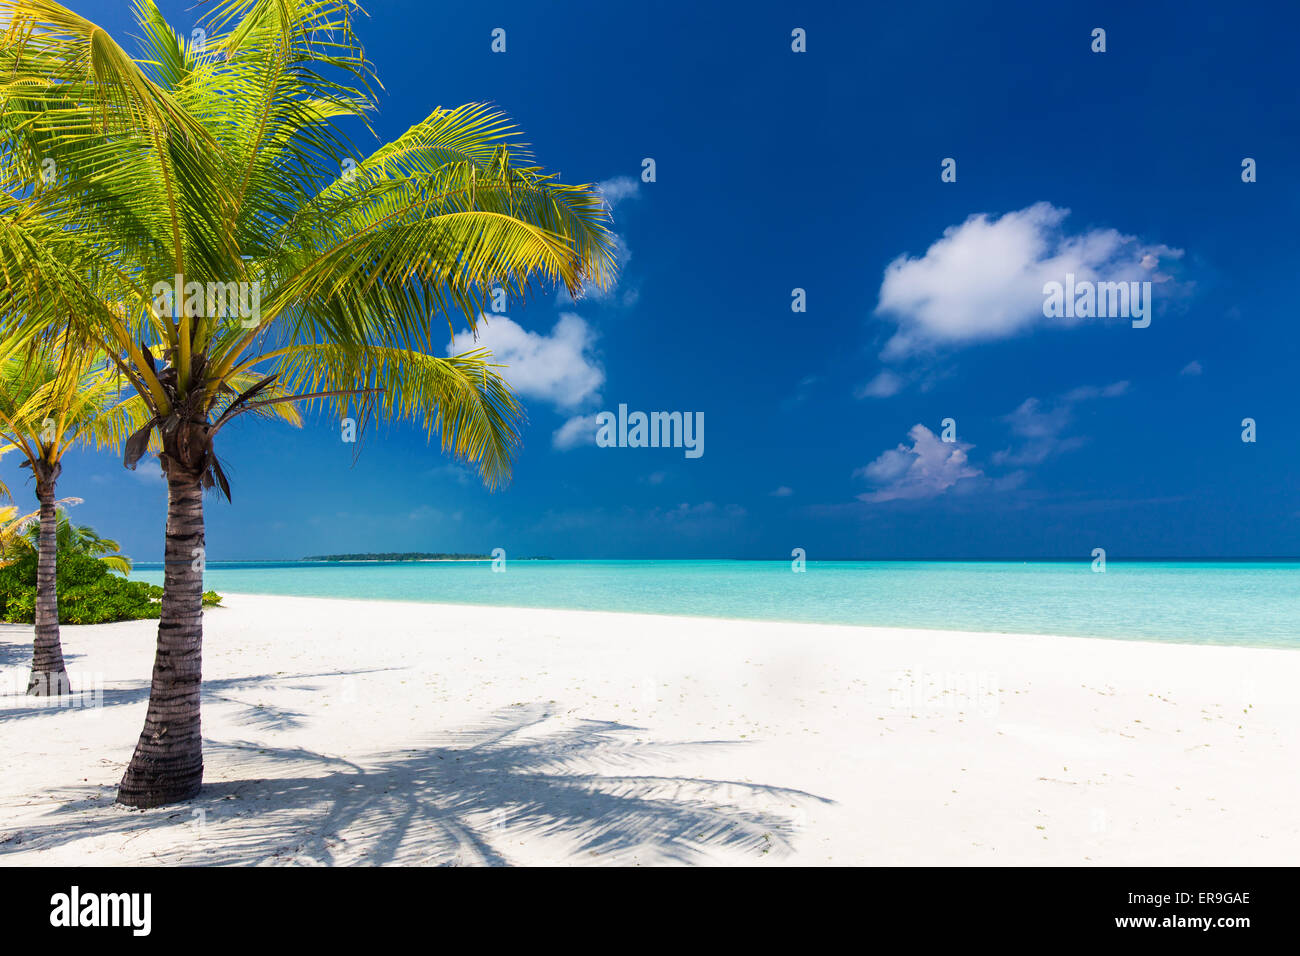 Two palm trees overlooking blue lagoon and white beach, Maldives - Stock Image